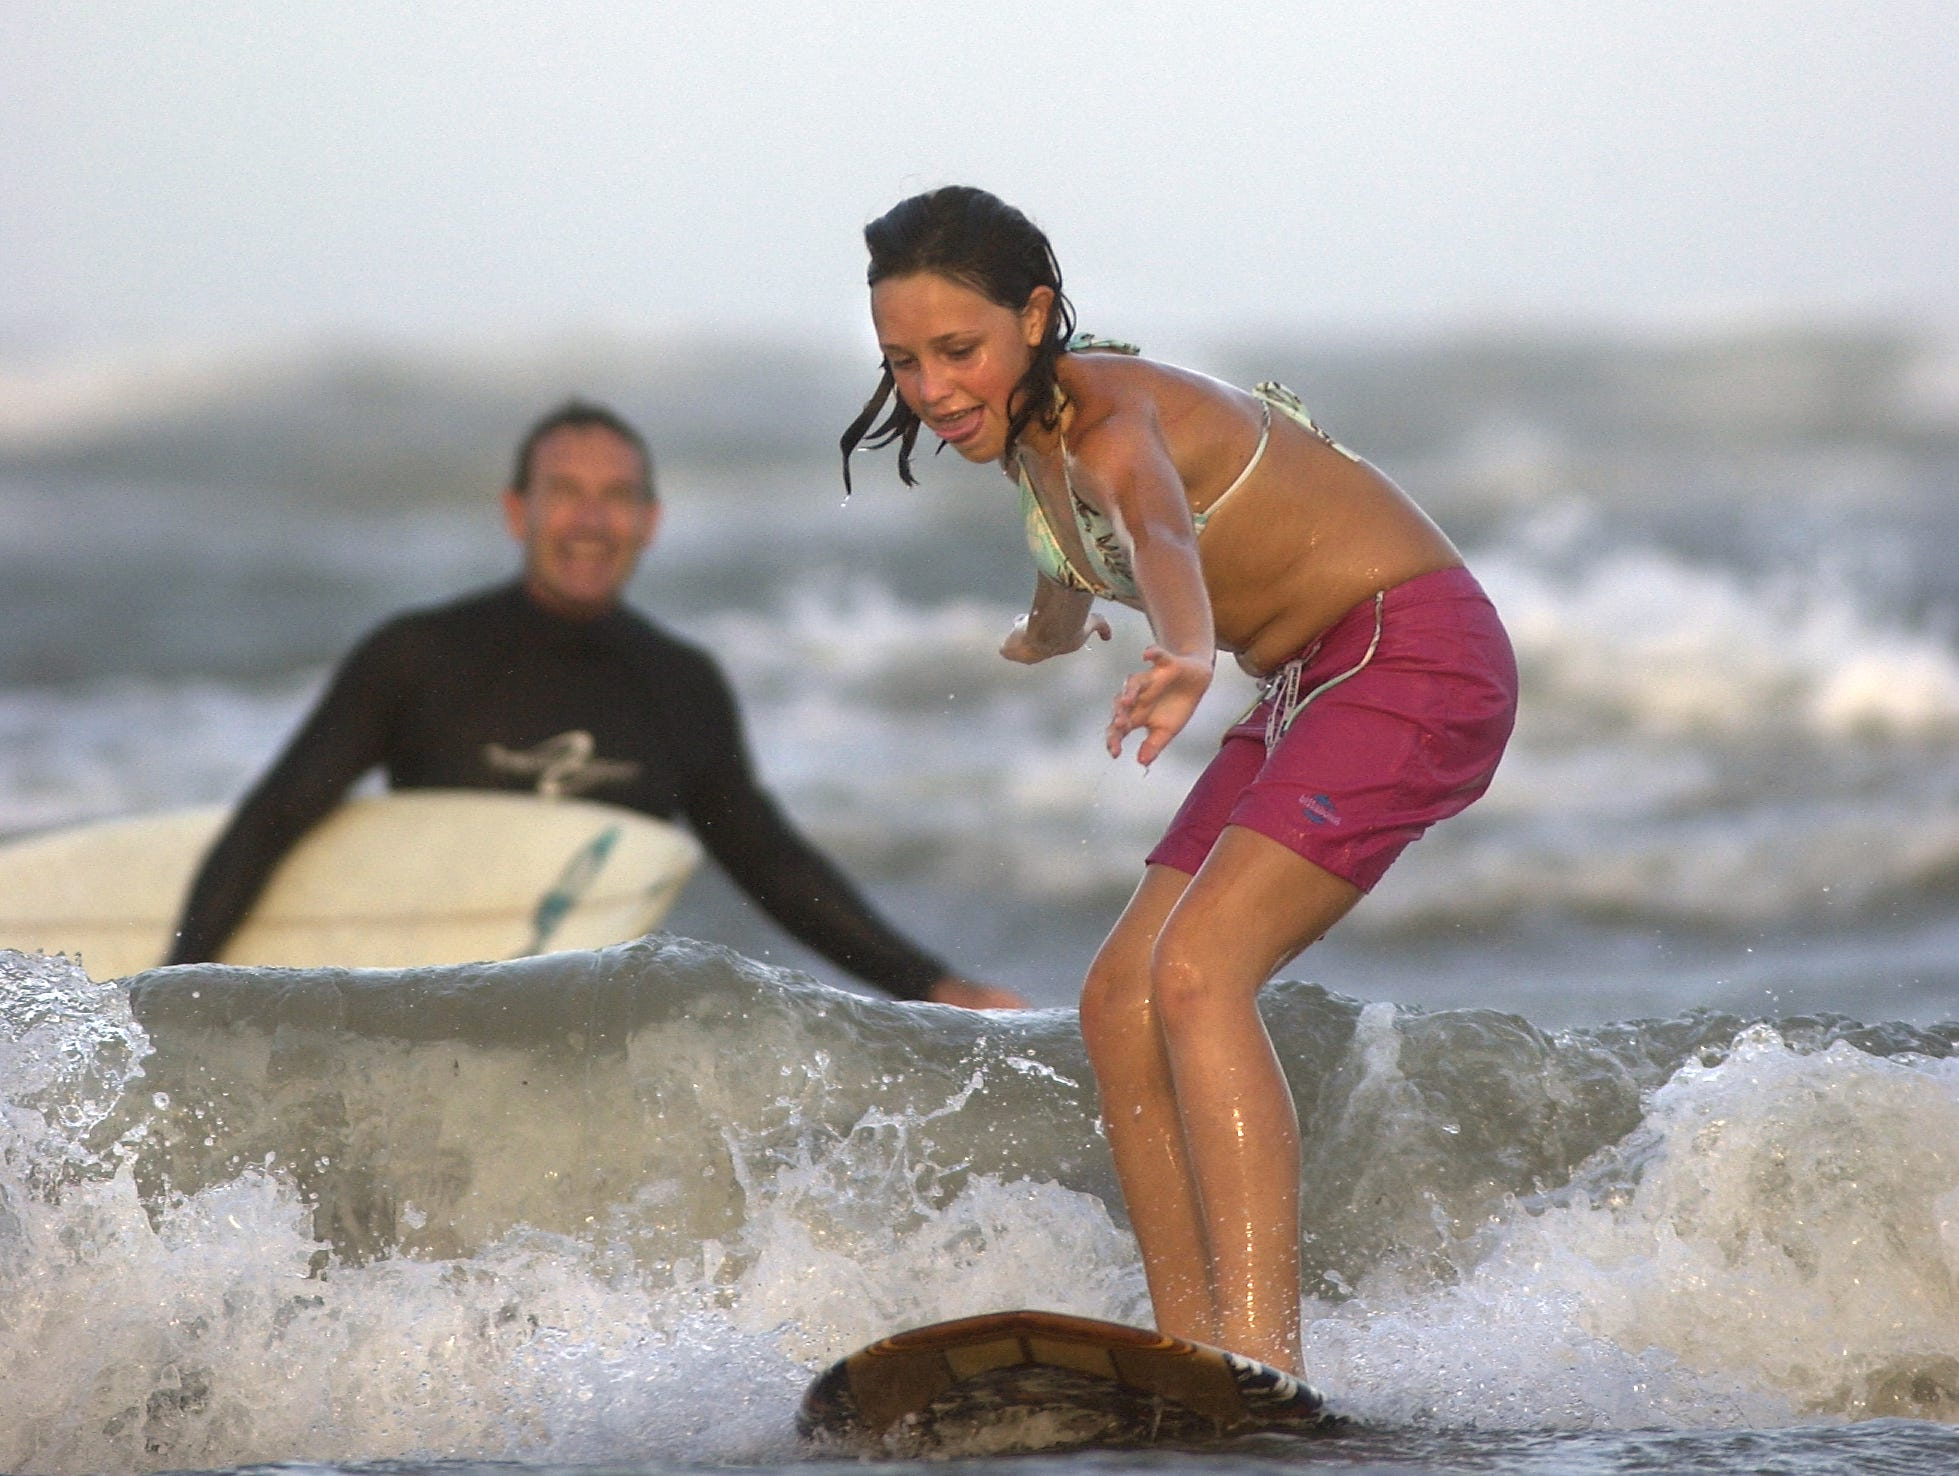 Michael Maley teaches daughter, Jasmin Maley, 11 to surf at Padre Island in Corpus Christi on June 13, 2003.